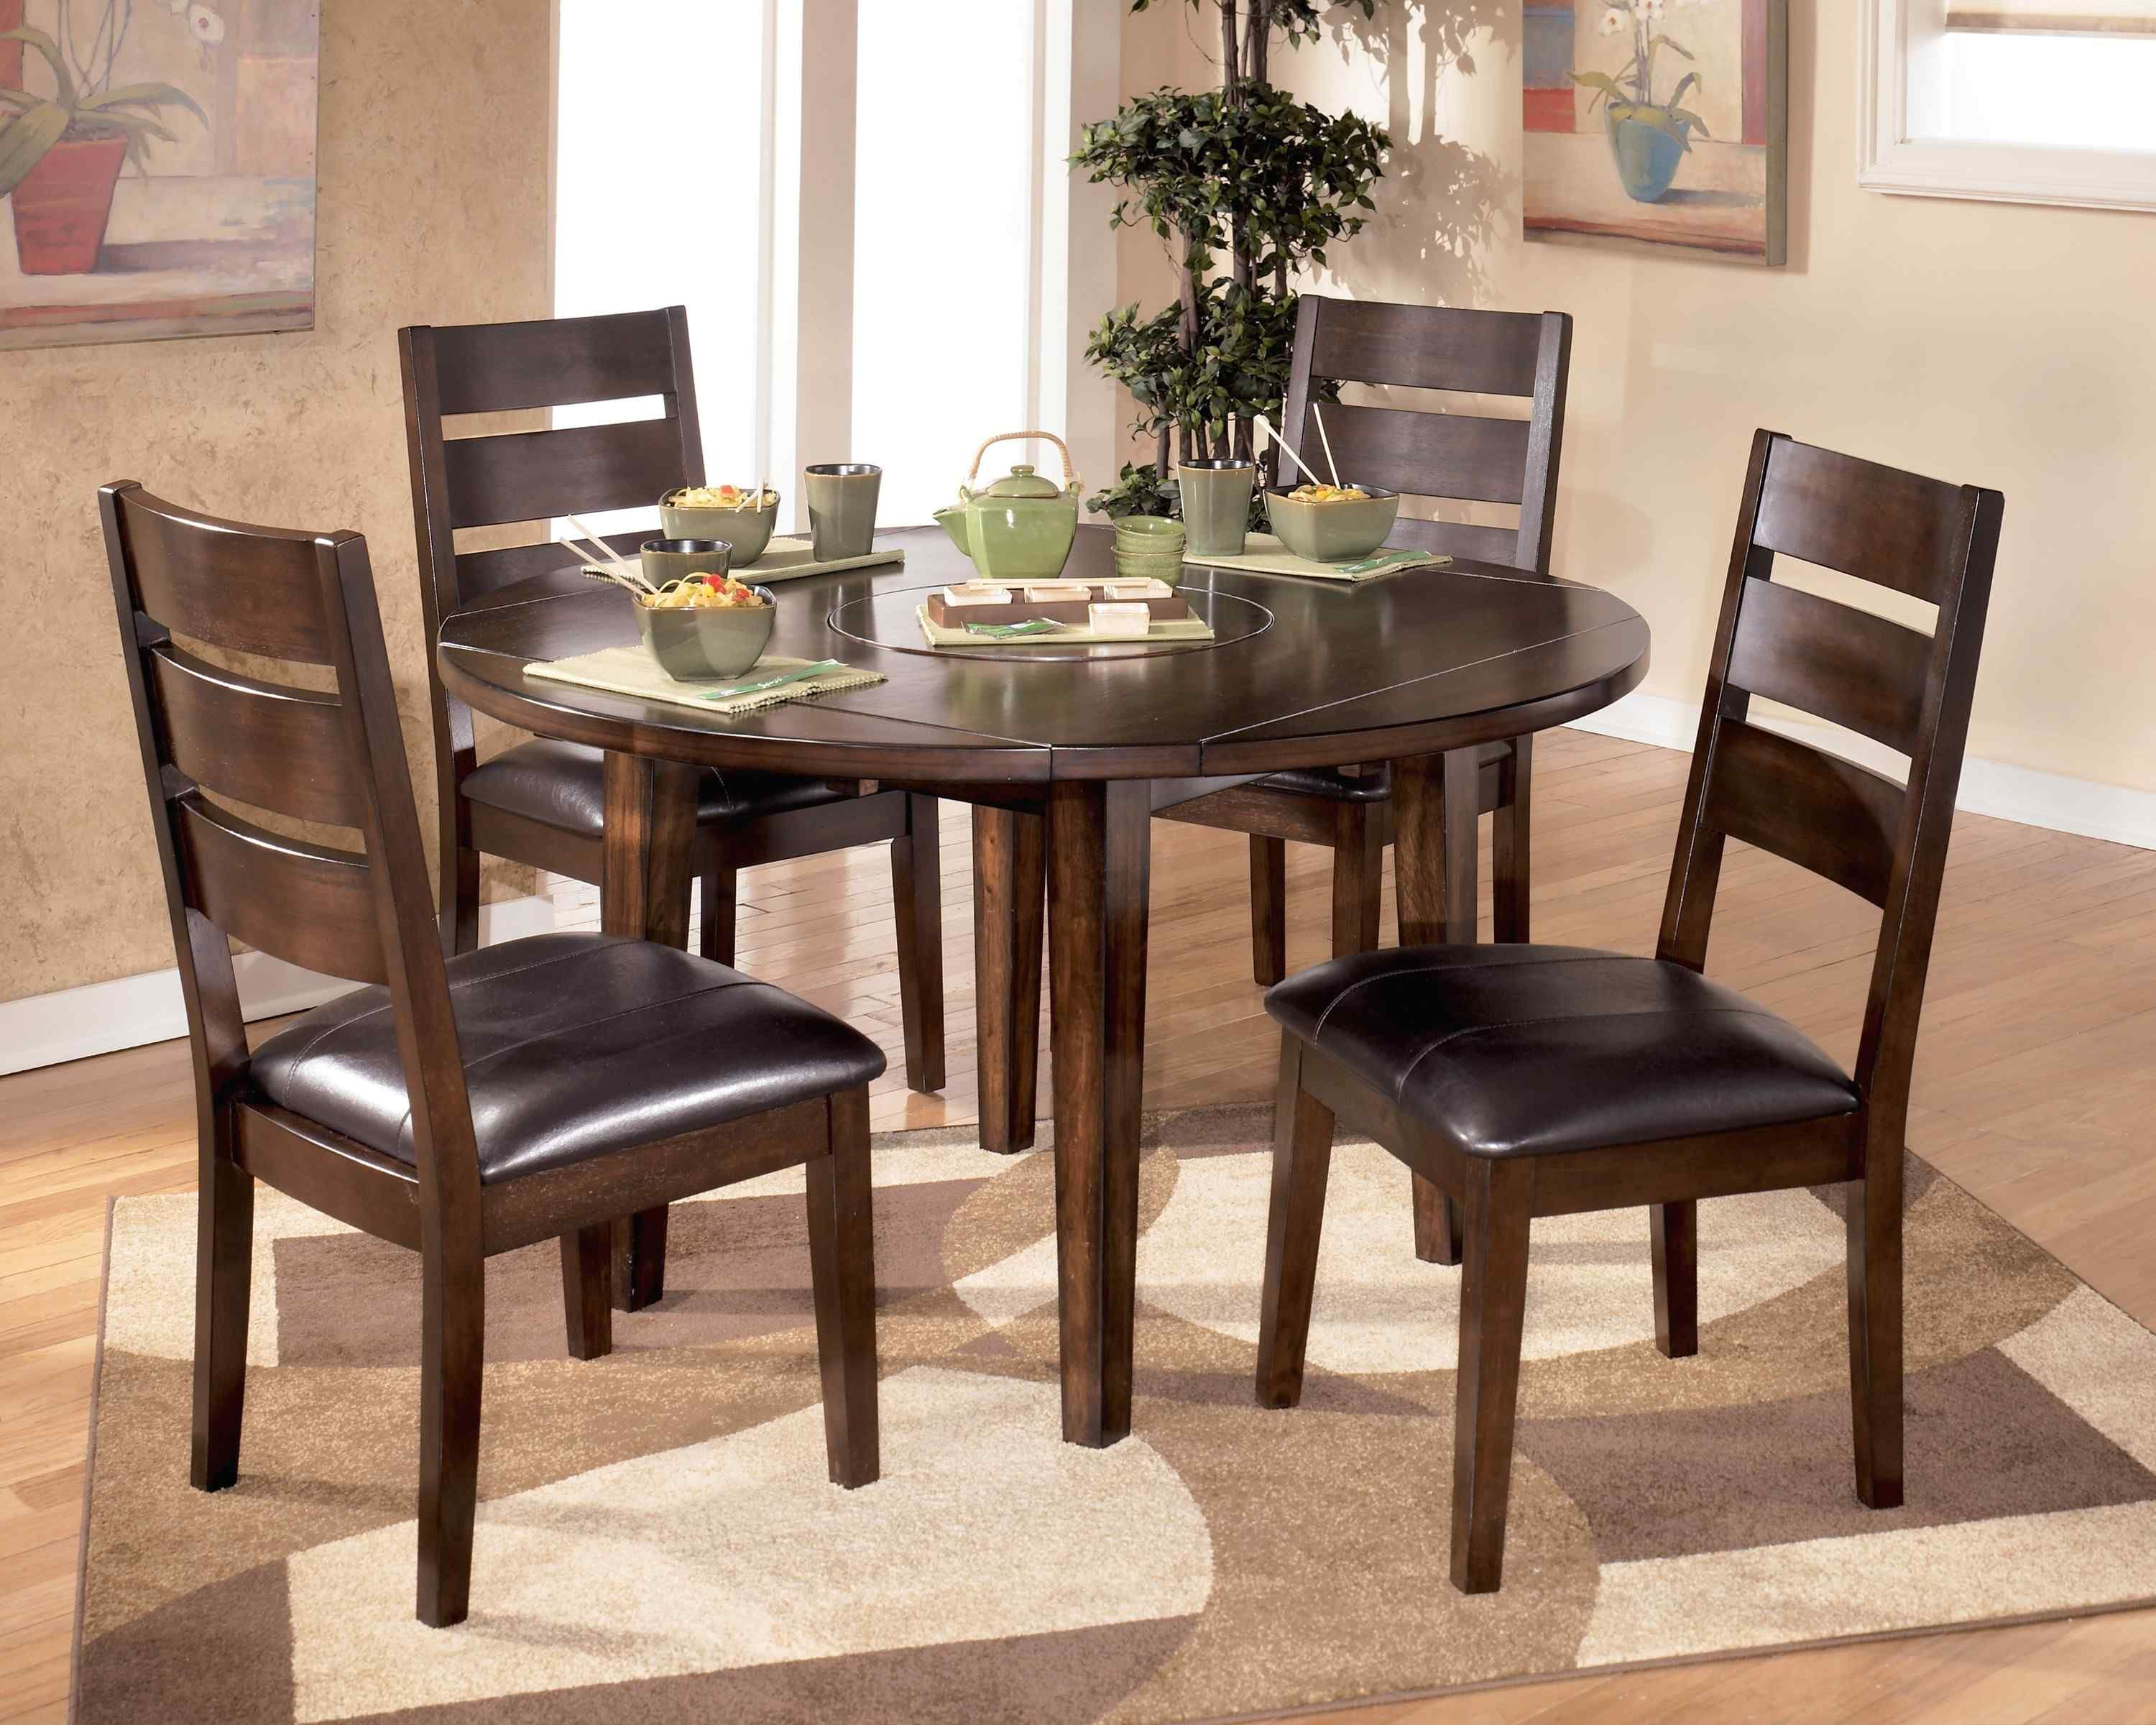 Dining Room Table Centerpiece Ideas Everyday Simple